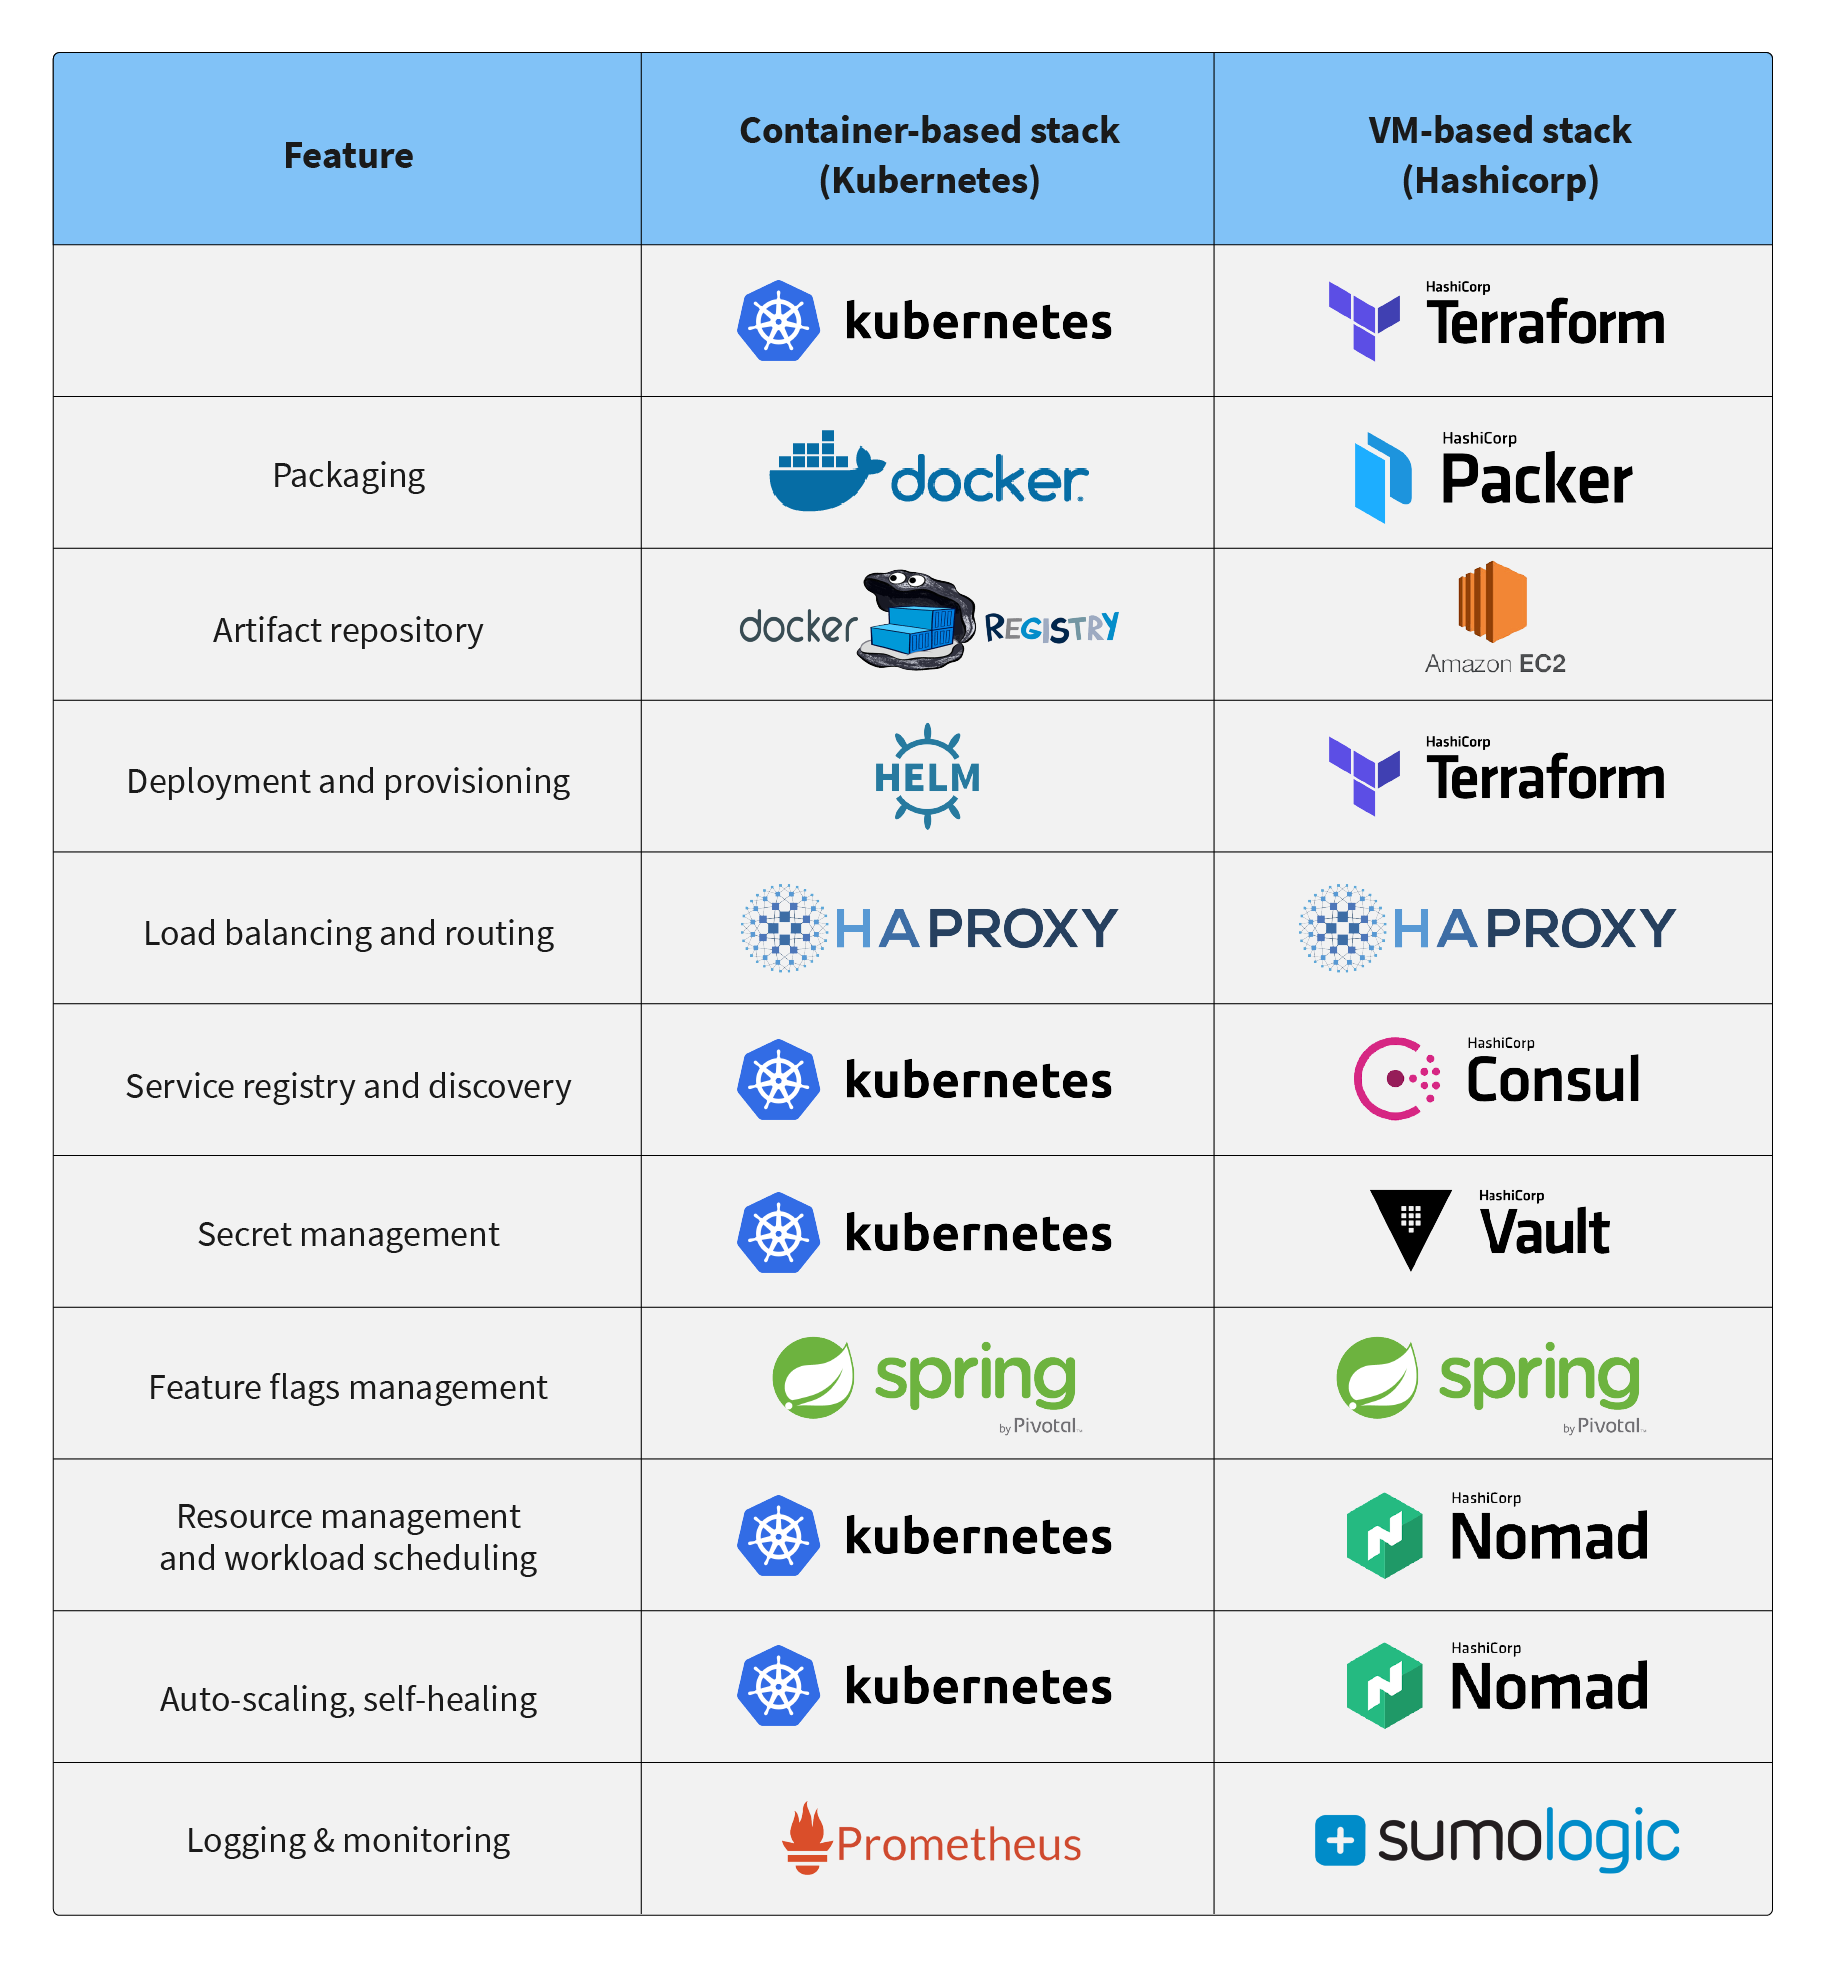 Comparison of VM and Docker technologies